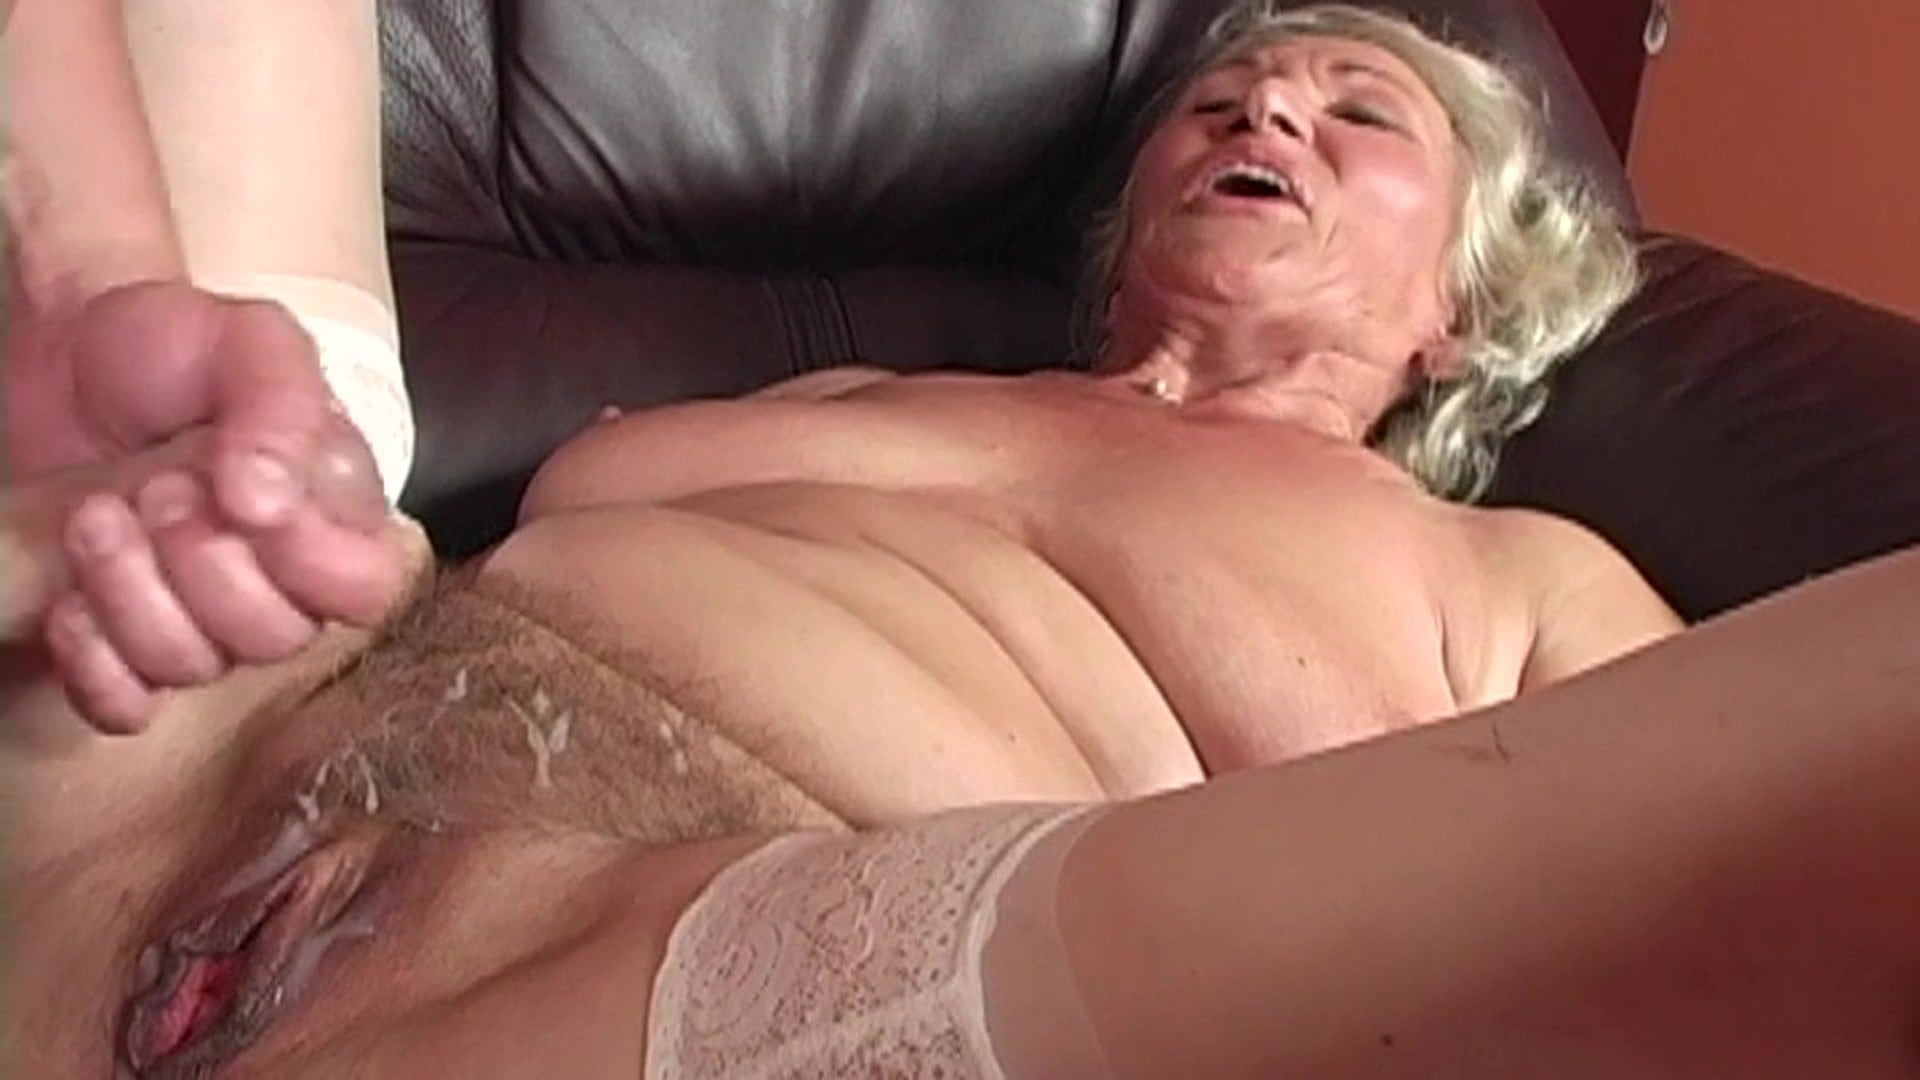 Sultry Grandma Norma In Hot Undies Shows Big Hooters And Toys Her Twat